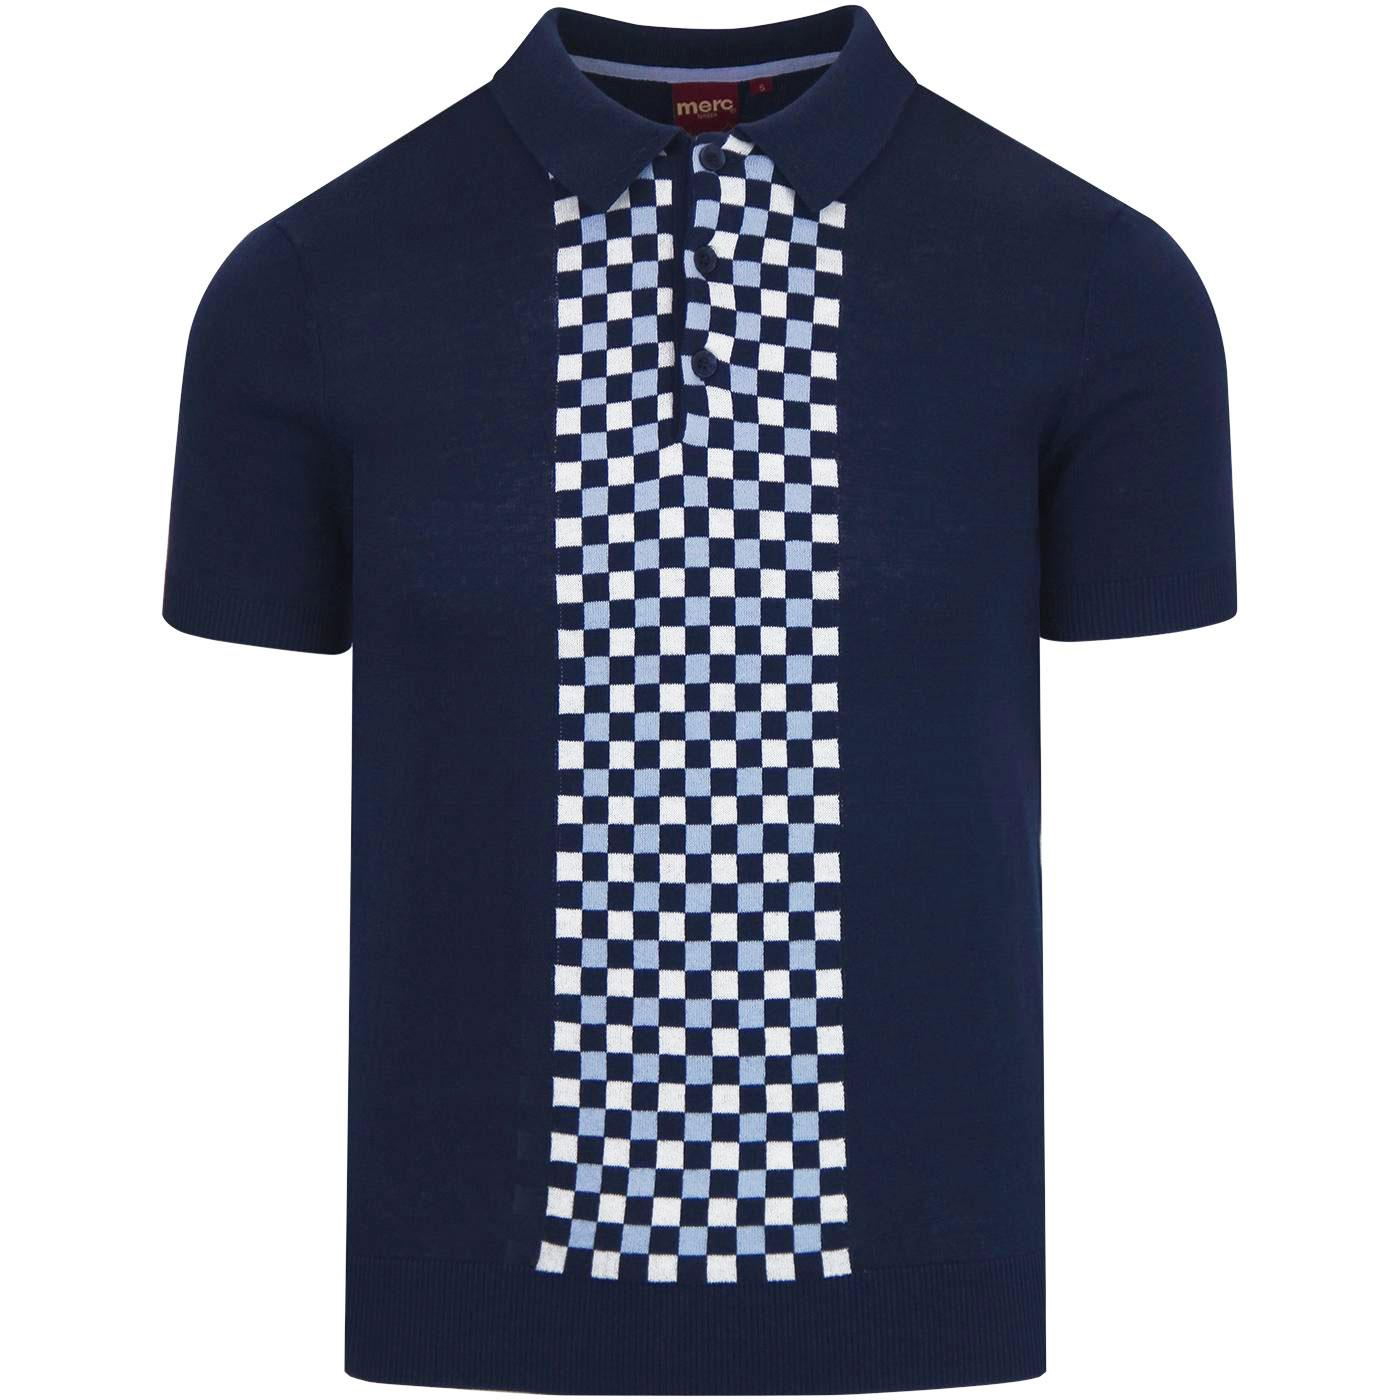 Jarvis MERC 60s Mod Checkerboard Knit Polo (Navy)